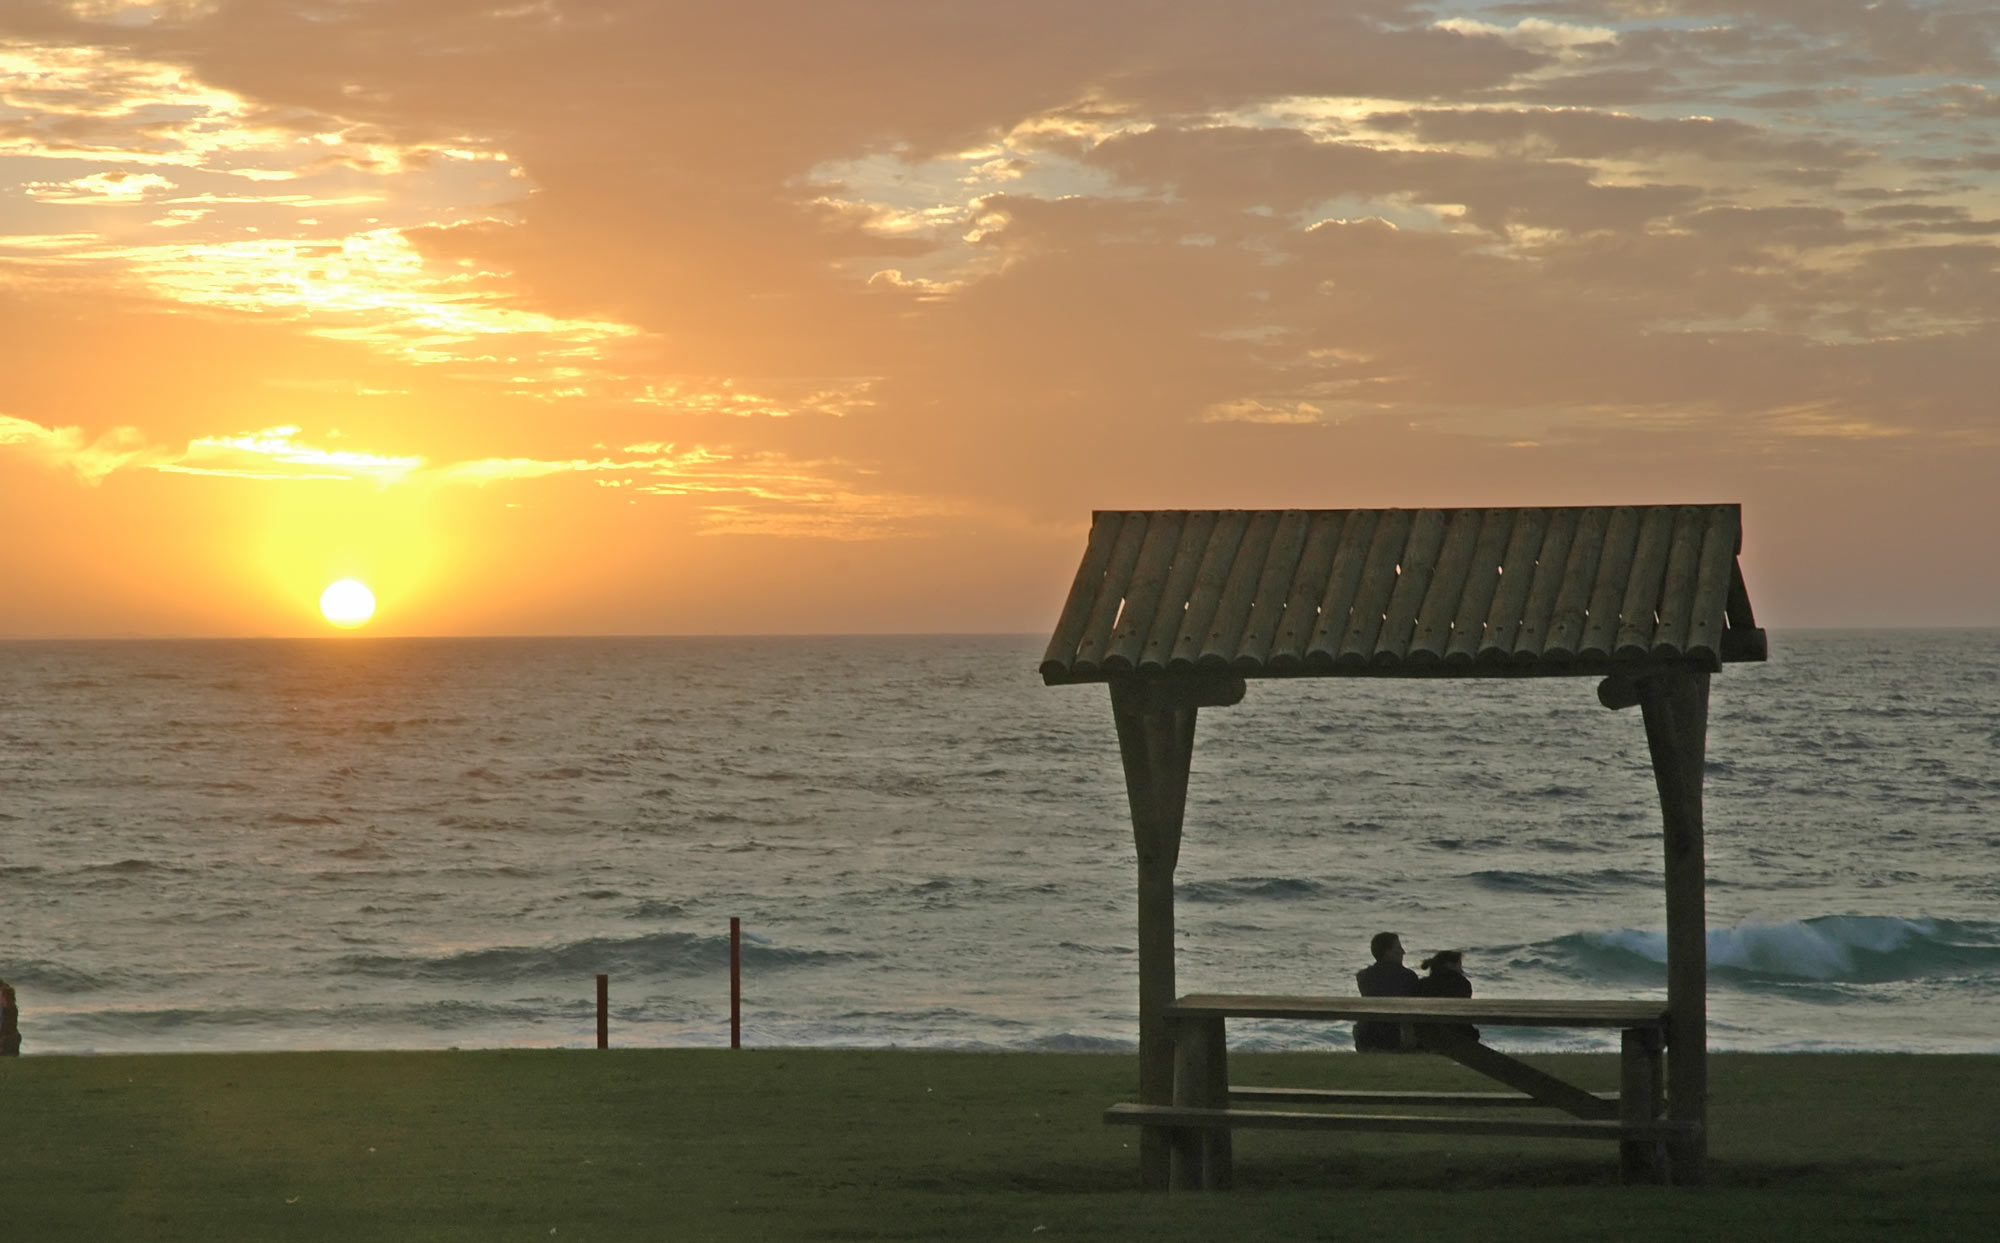 Perth Picnic Spots And Sunset Shots Perth Luxury Tours